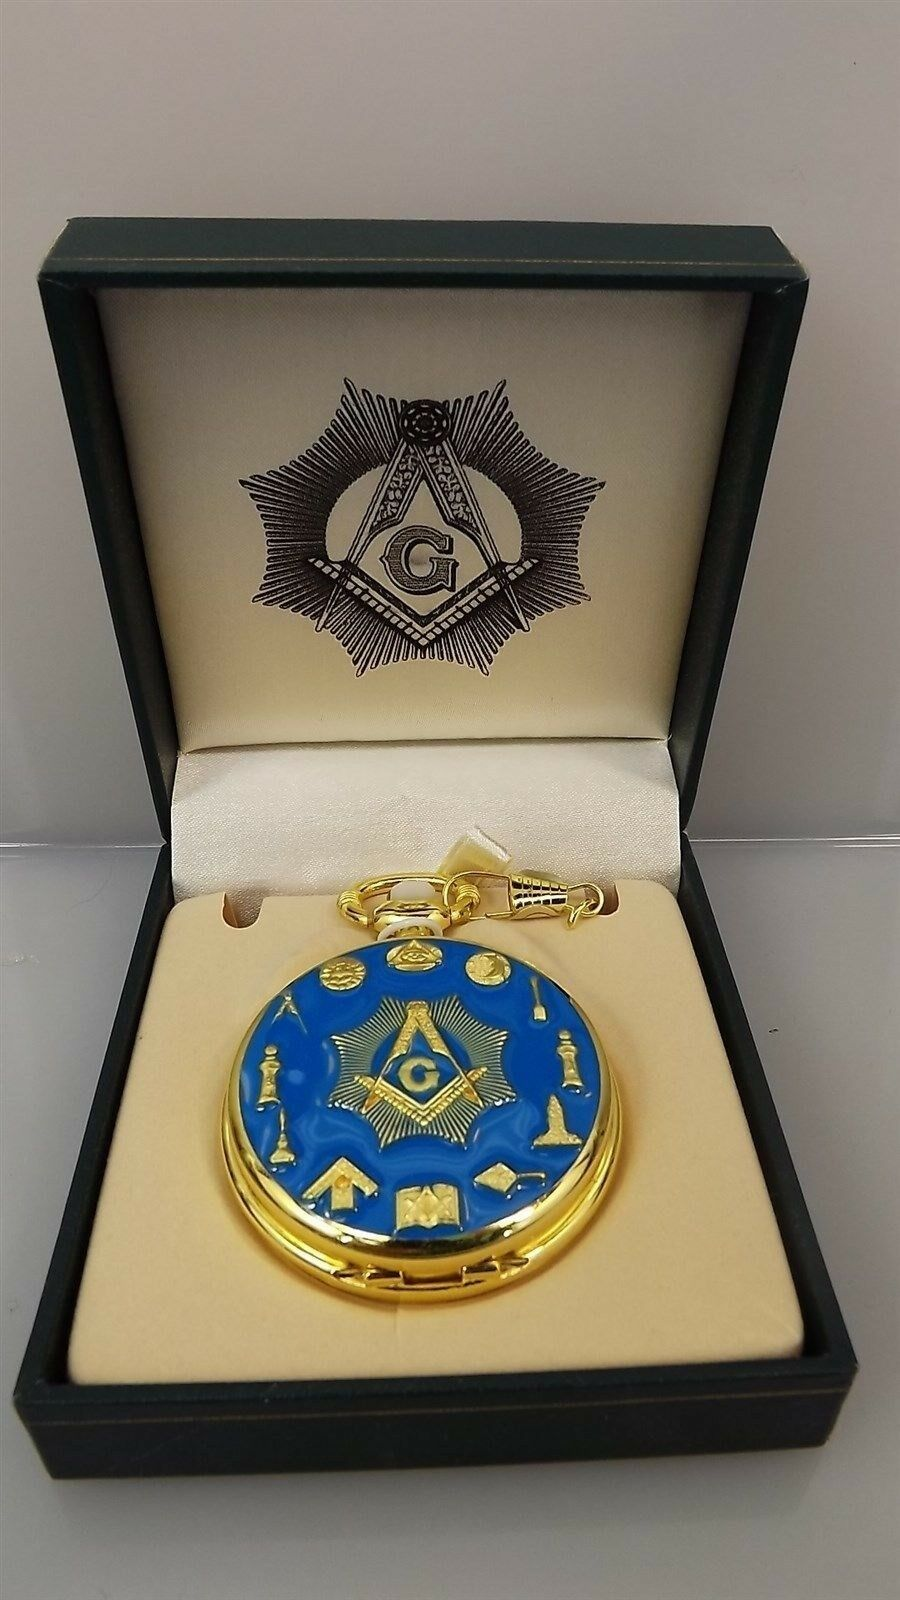 New Masonic Mason Pocket Watch Square & Compass WORKING TOOLS QUARTZ BLUE LODGE 1